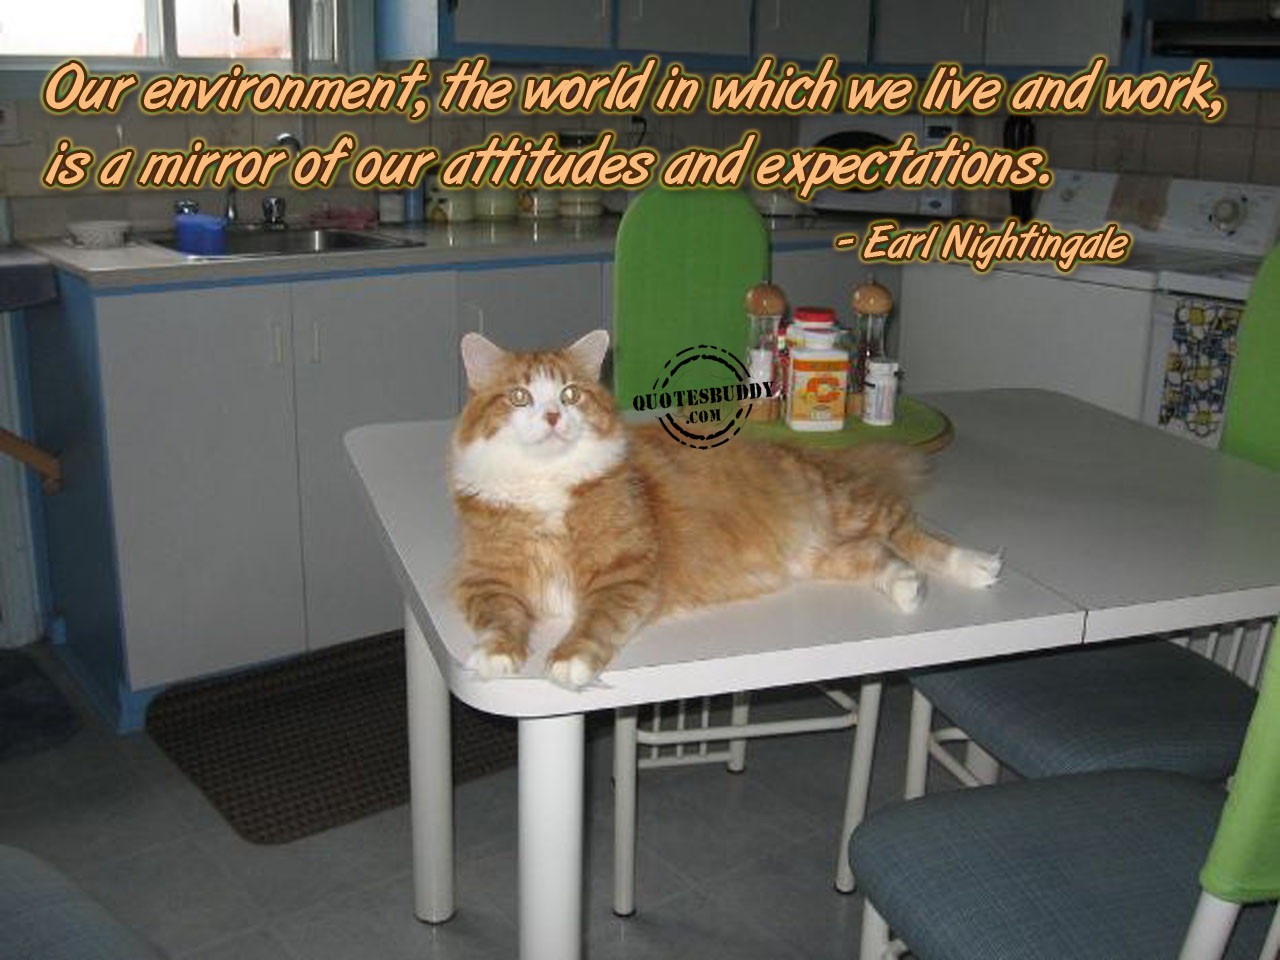 Work Environment quote #2